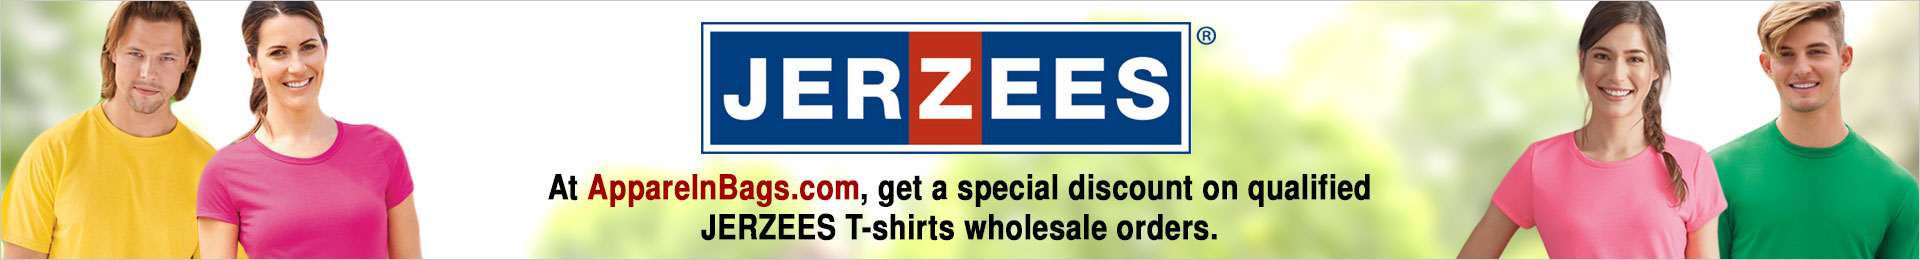 Jerzees T-Shirts